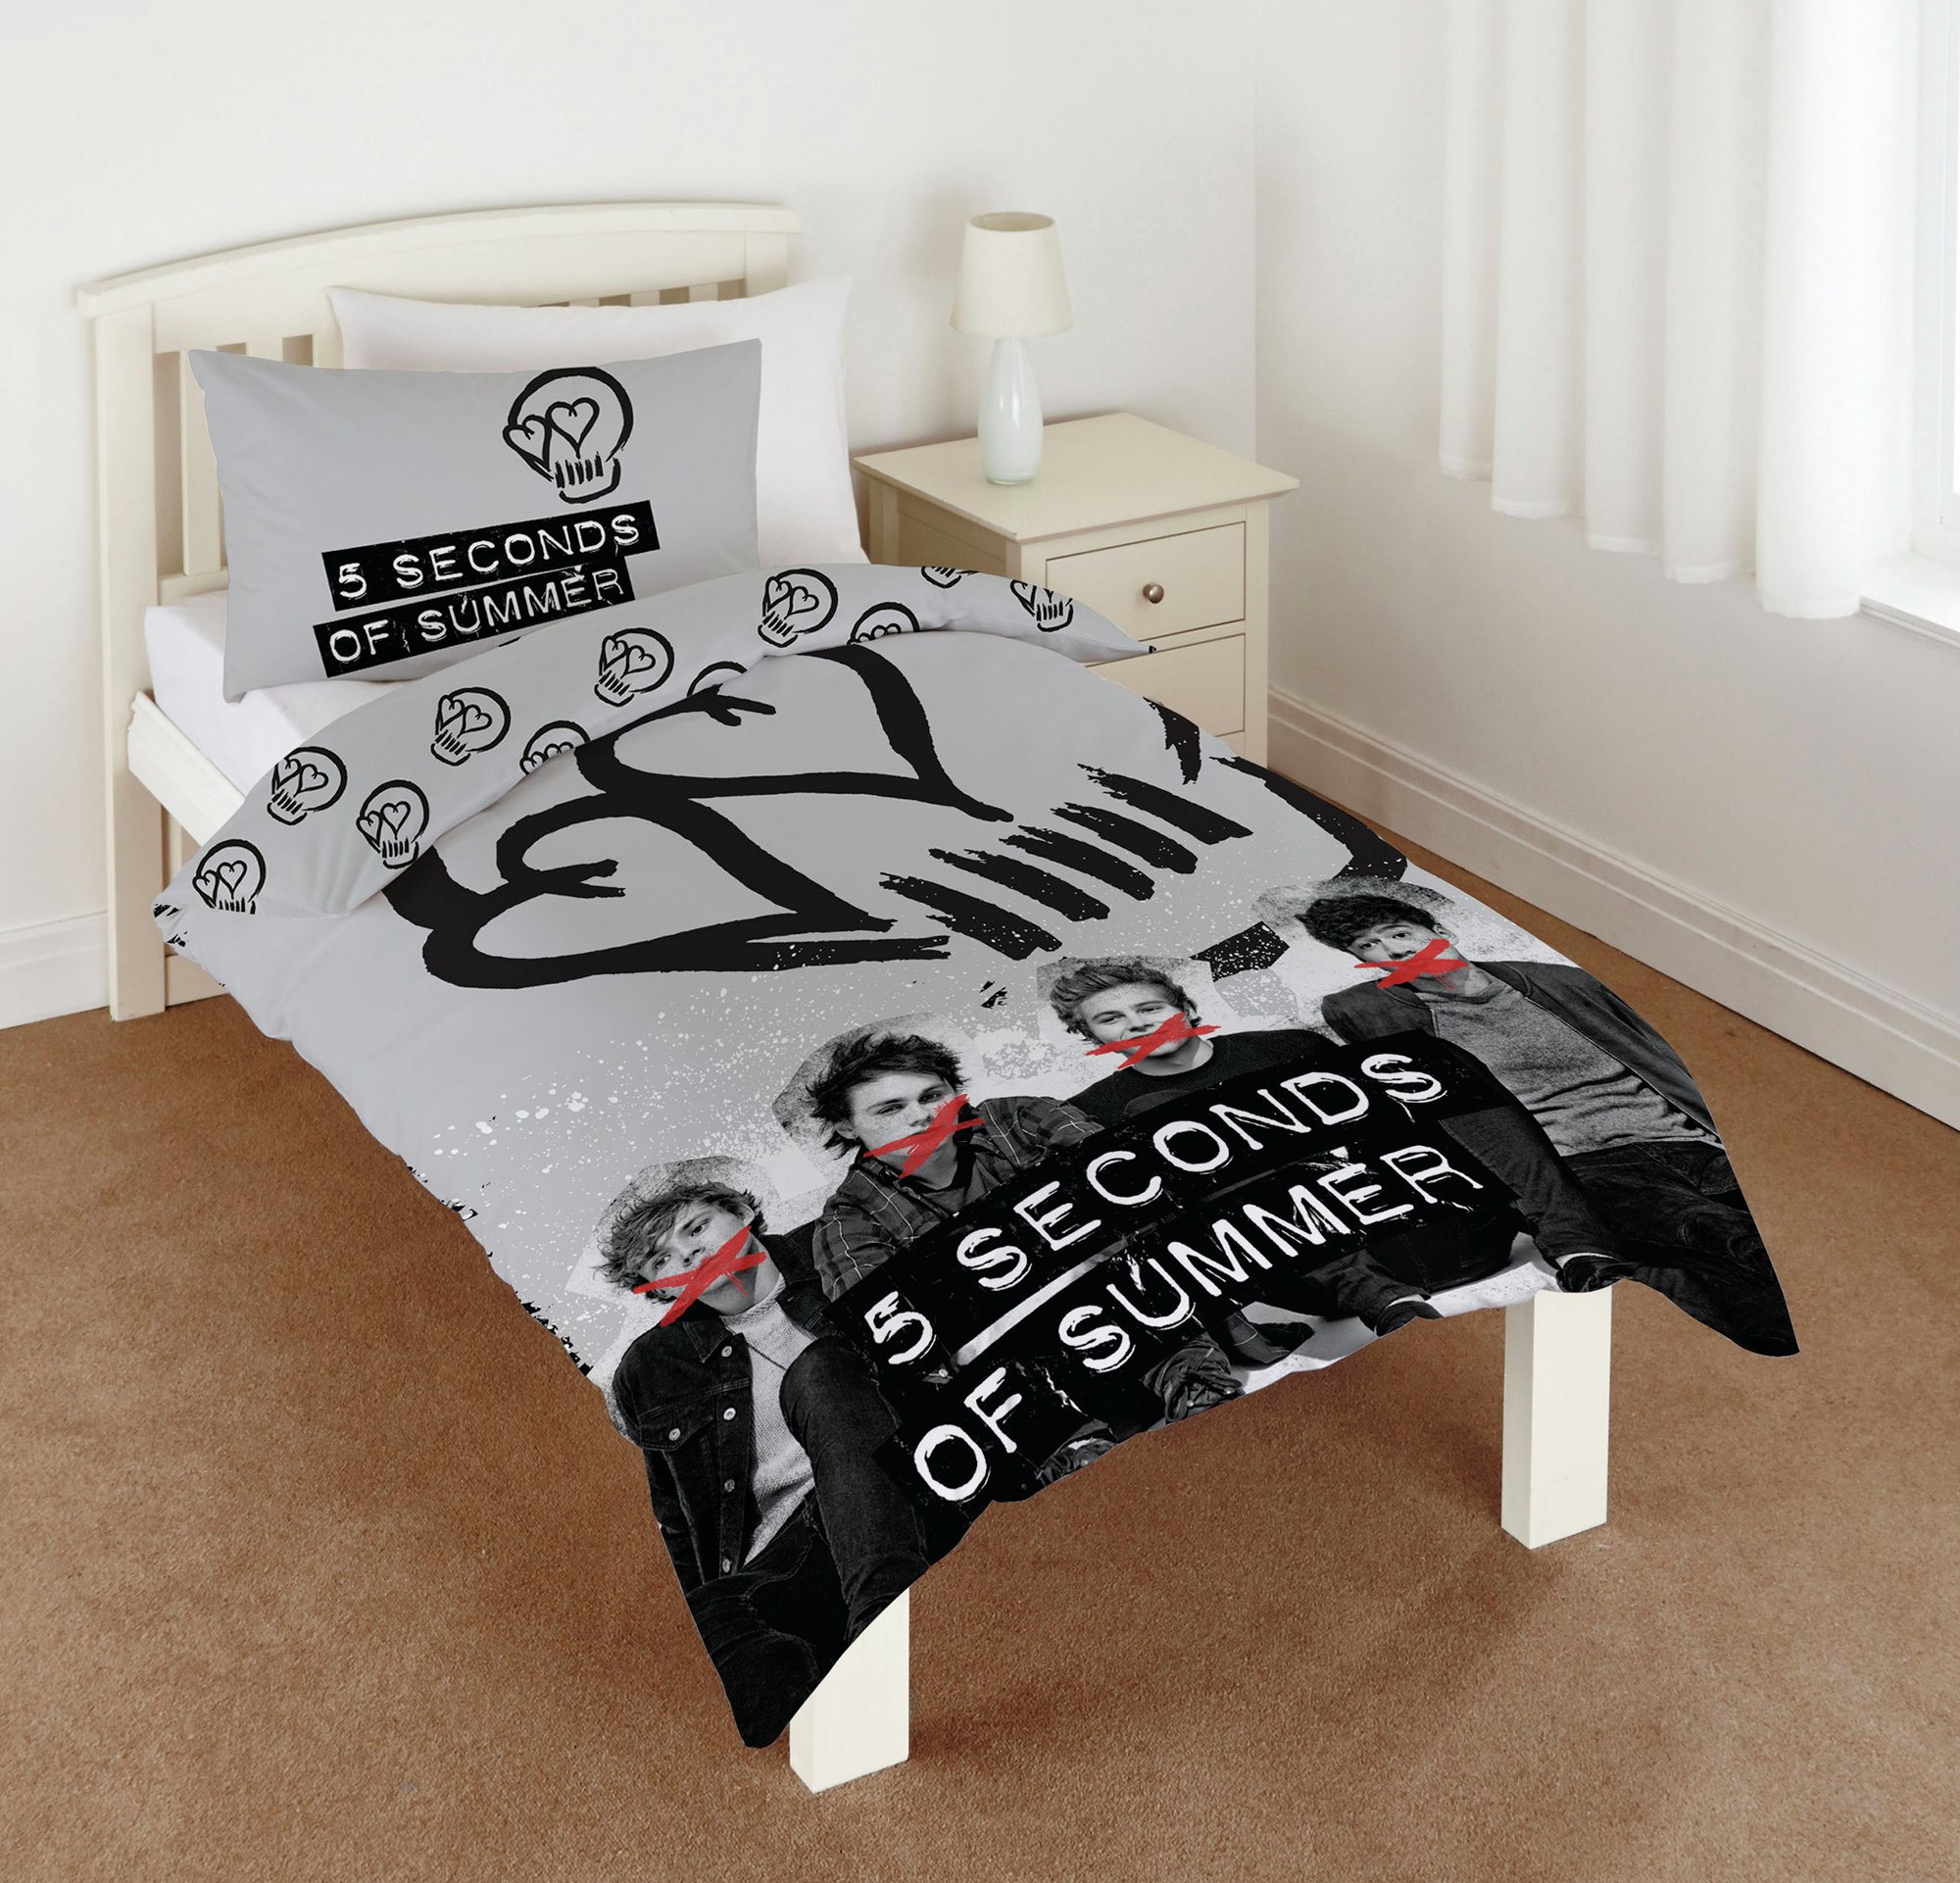 Image of 5 Seconds of Summer Duvet Cover Set - Single.